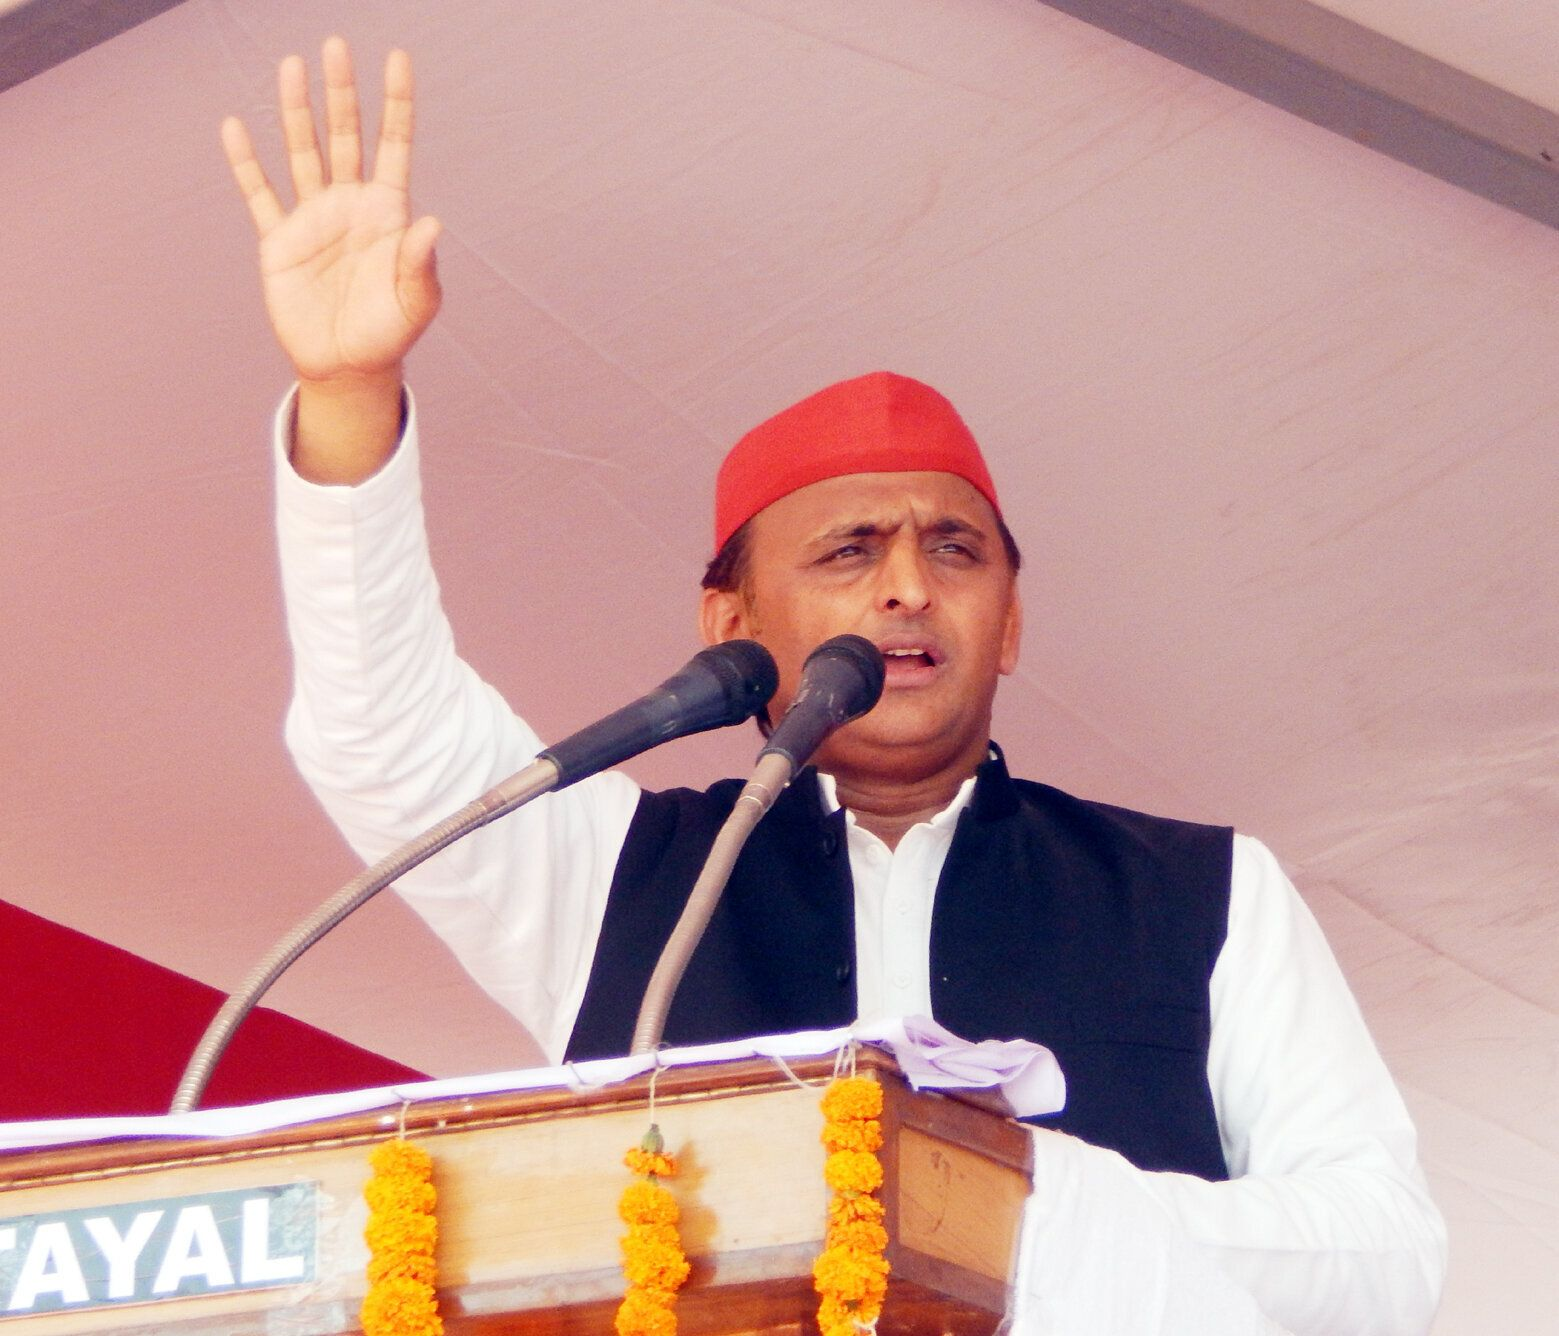 Akhilesh Yadav Leading By Over 1.8 Lakh Votes In